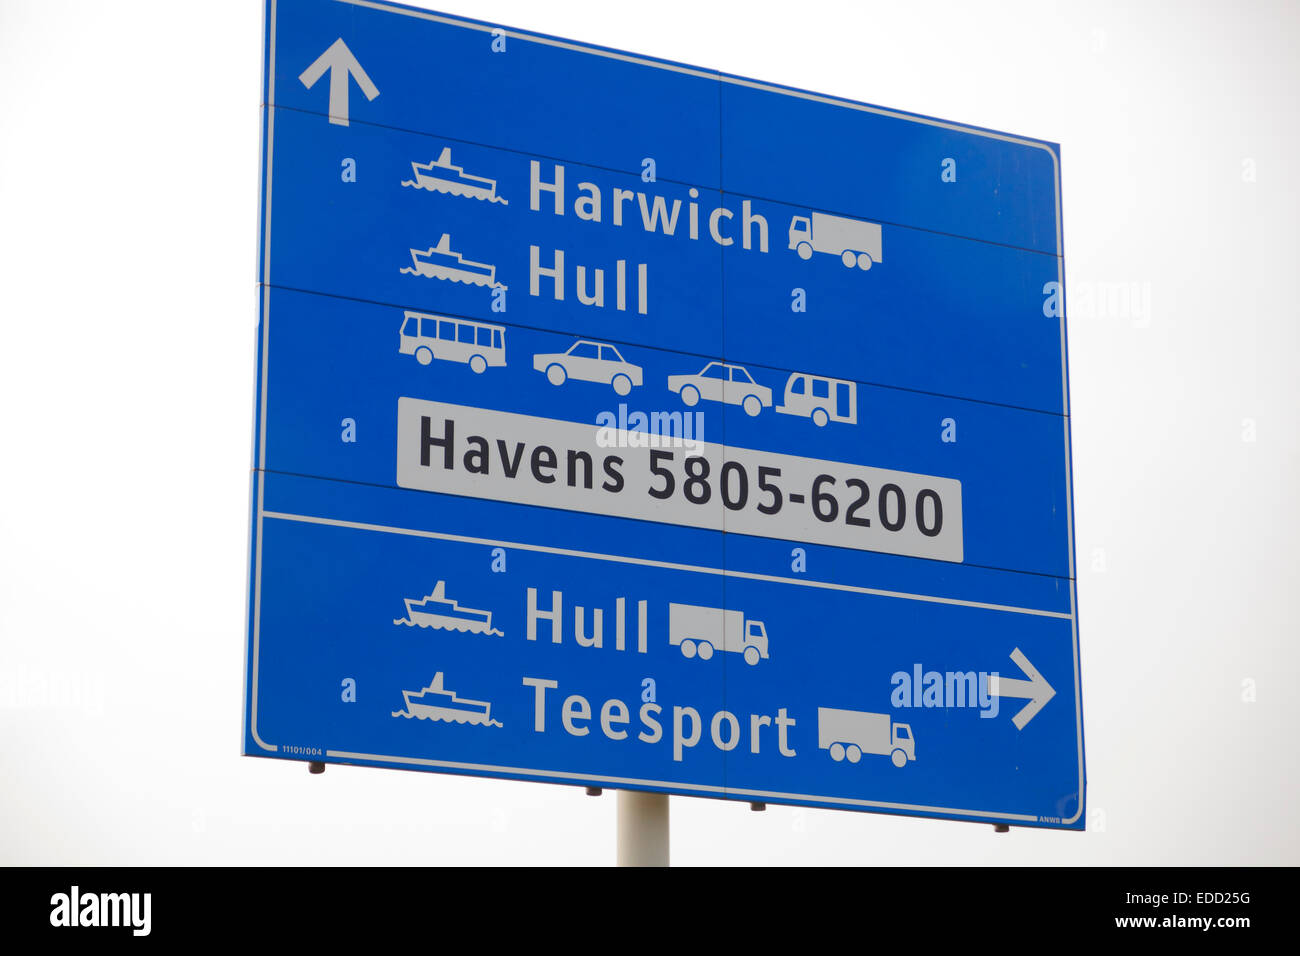 direction sign ferries to Harwich and Hull in the harbour of Rotterdam, Netherlands - Stock Image